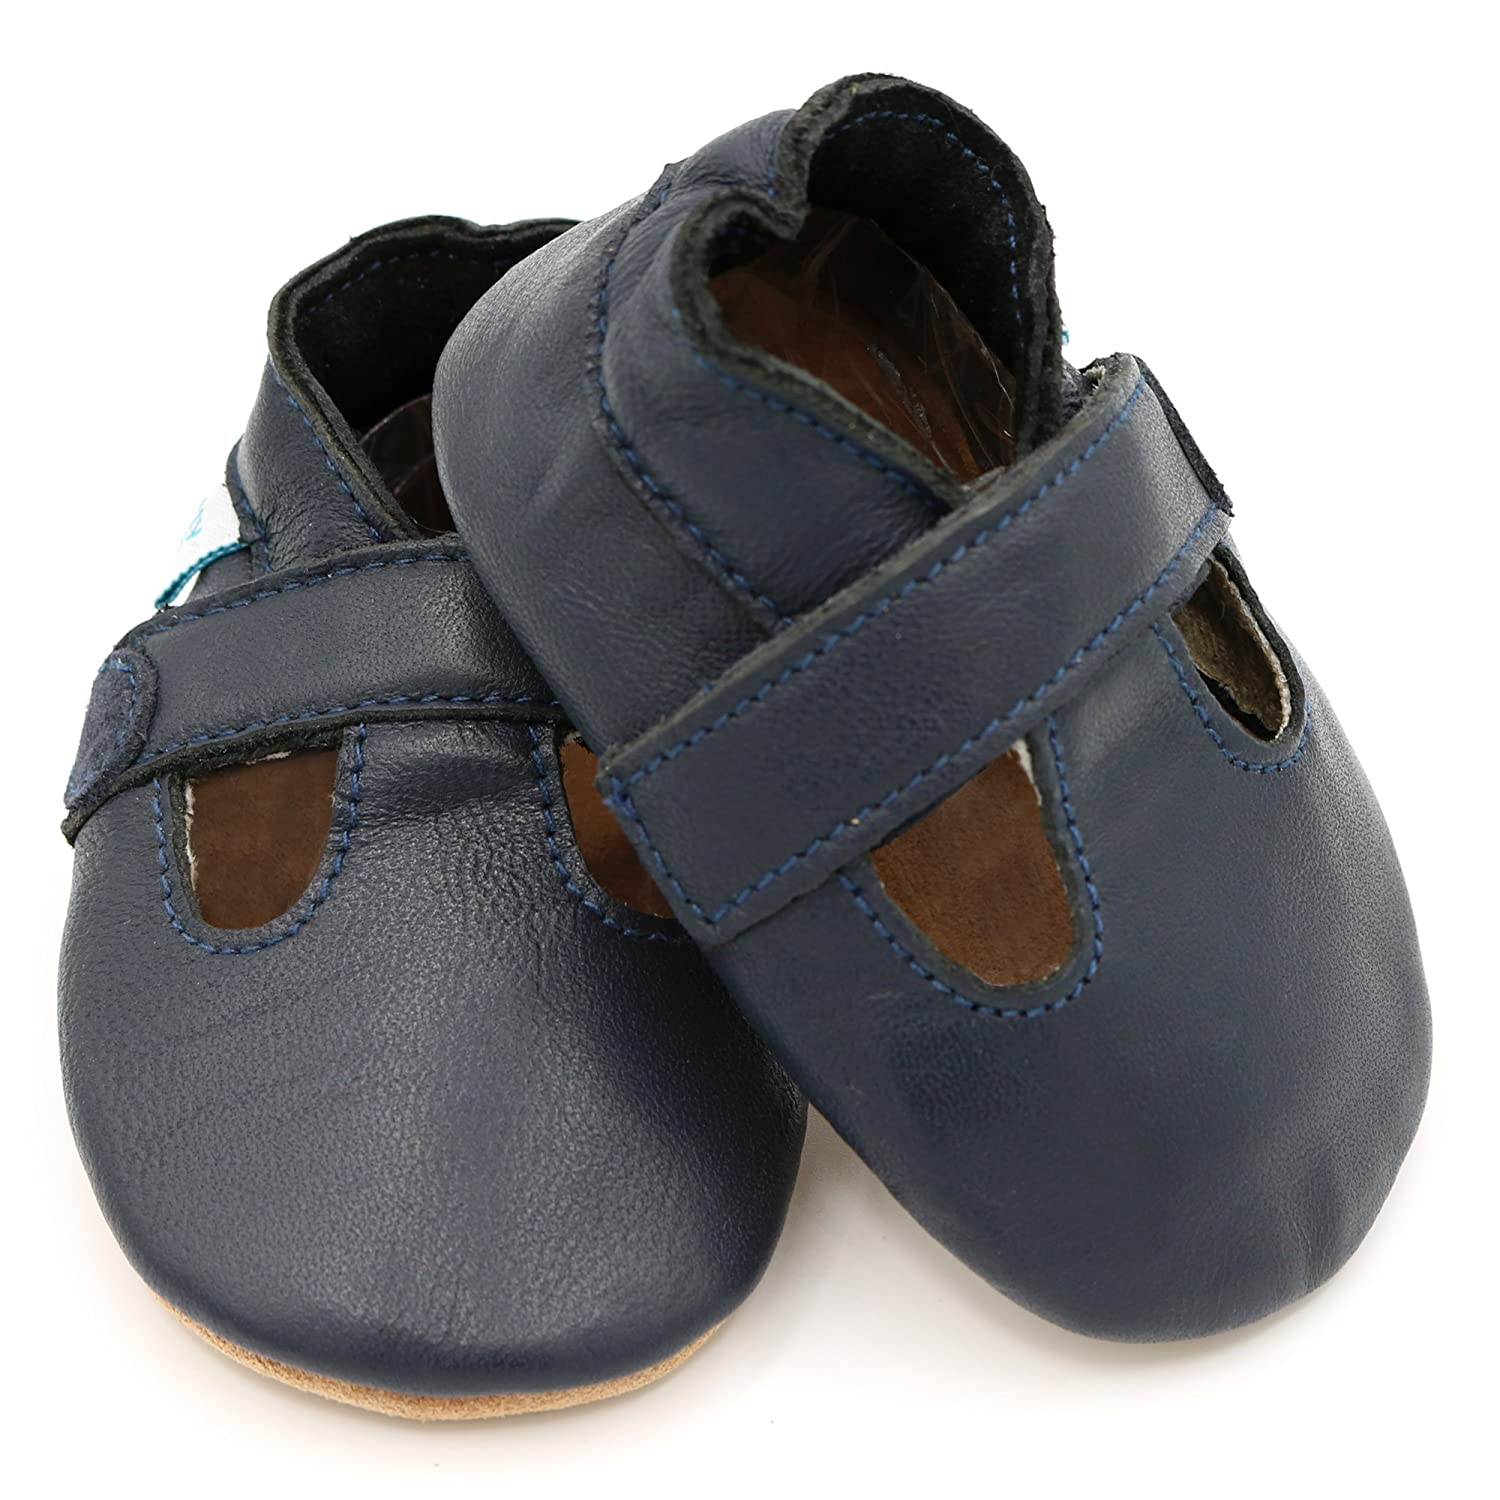 0-6 Months Navy T-Bar Shoes for Boys Dotty Fish Soft Leather Baby Shoes